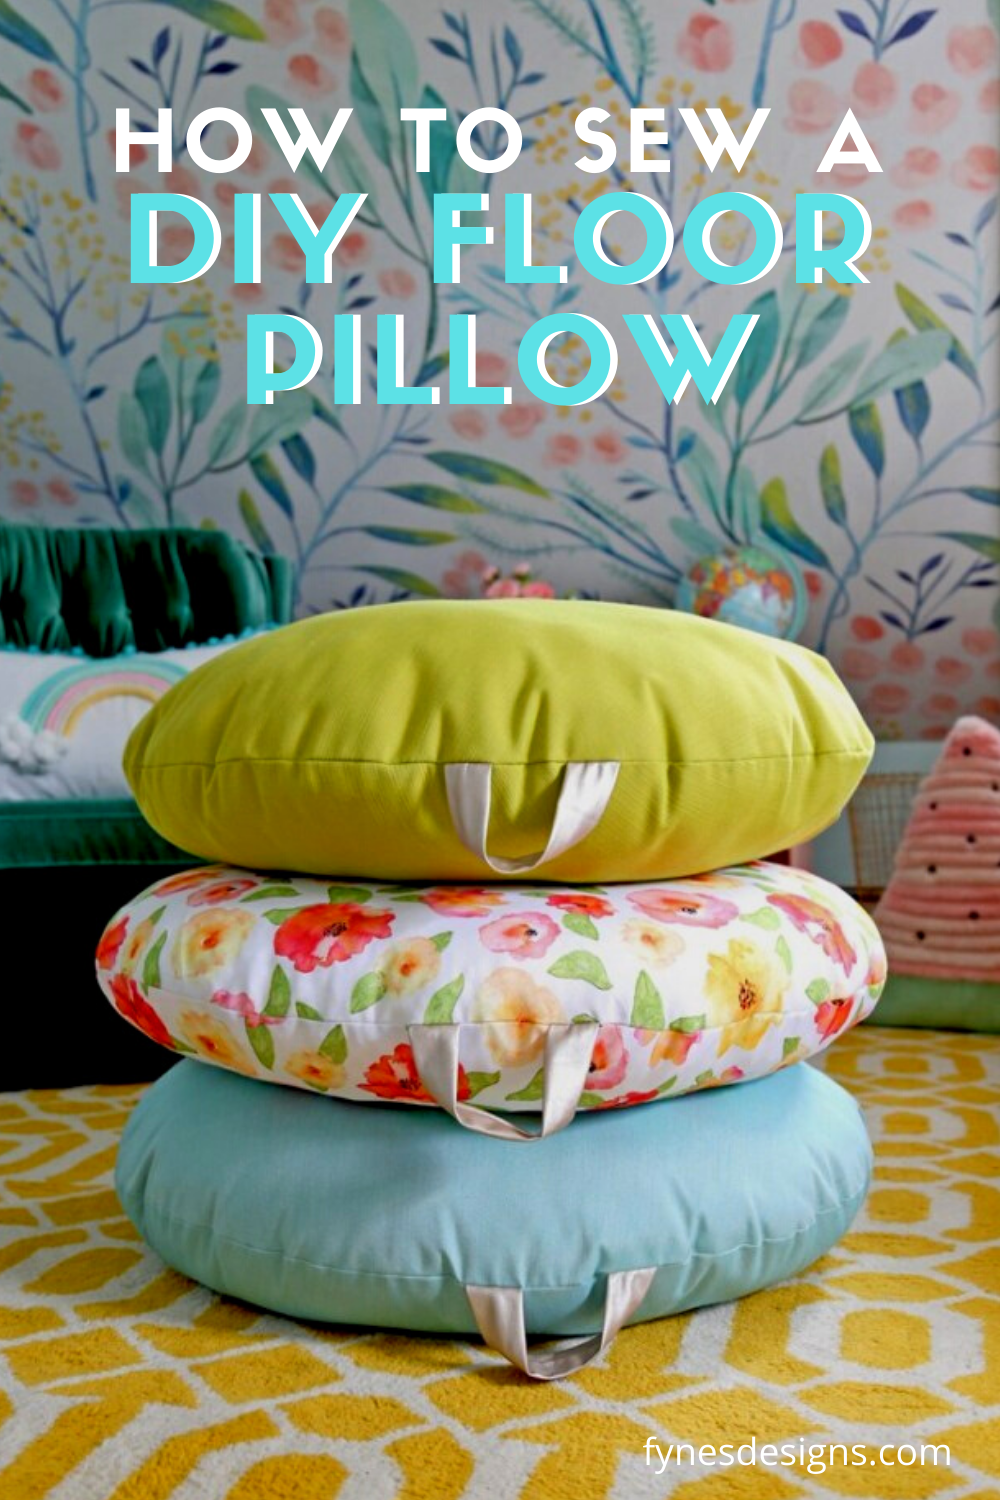 How To Sew A Diy Floor Pillow A Step By Step Tutorial In 2020 Diy Flooring Floor Pillows Pillows